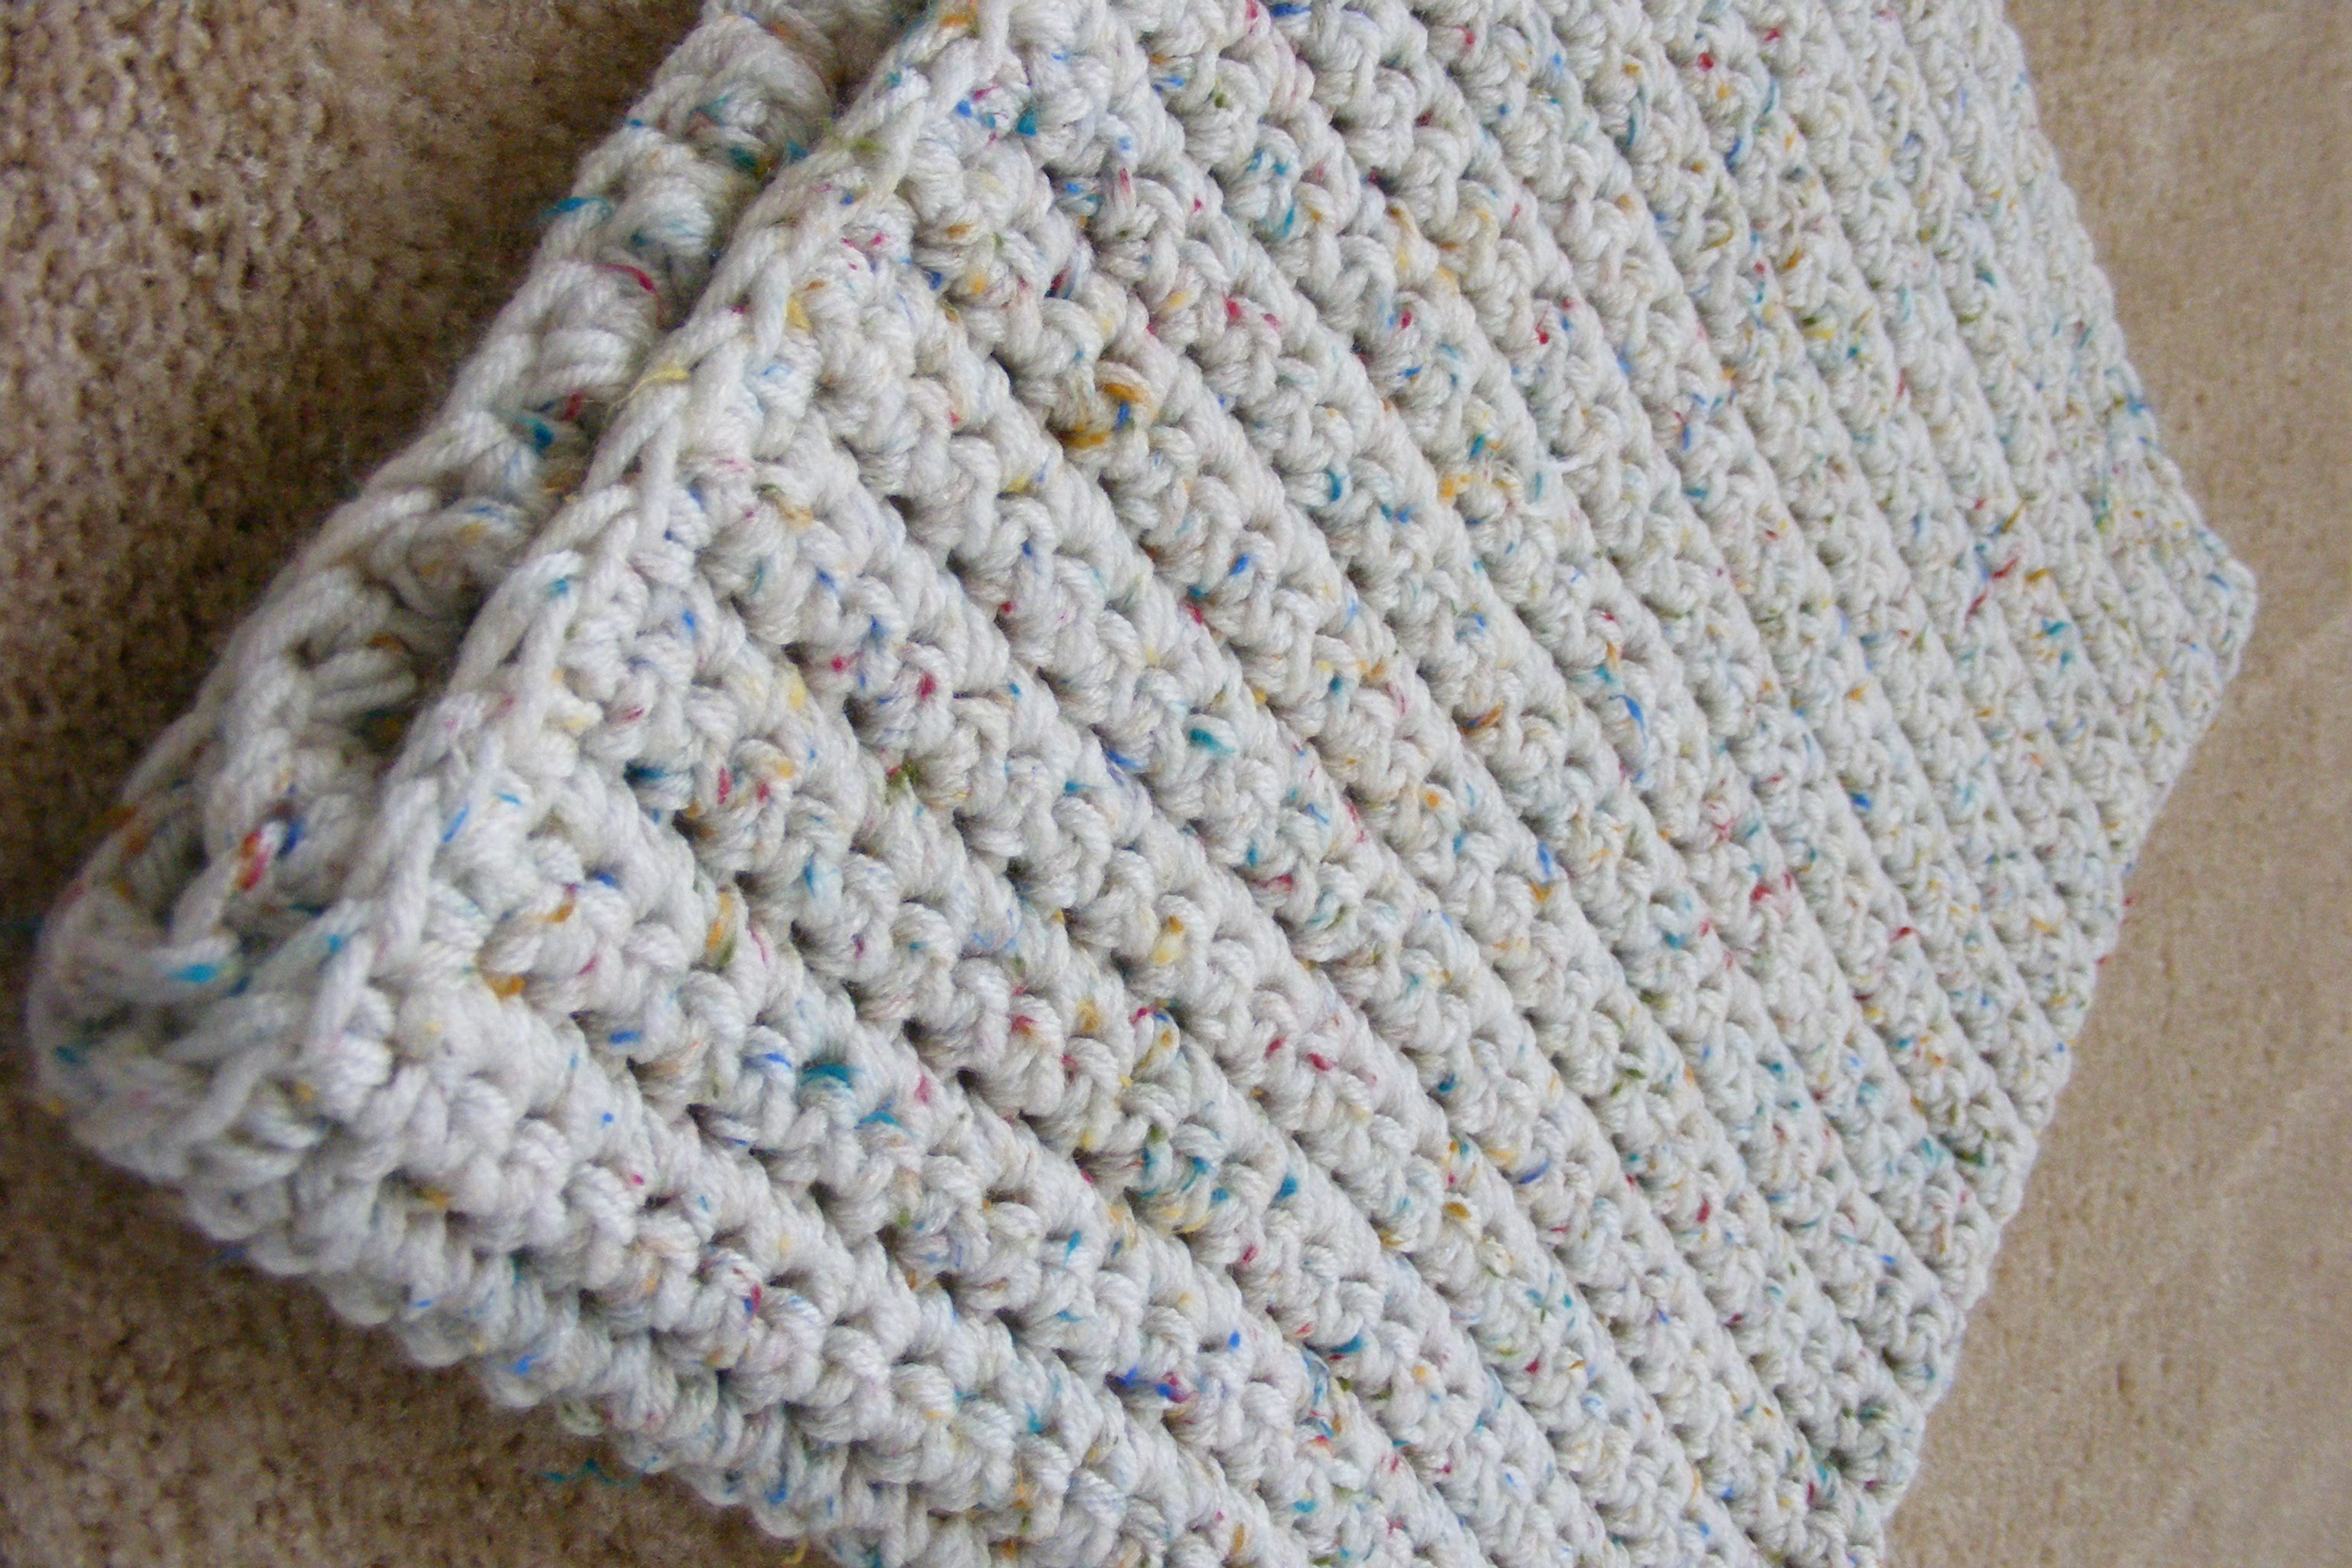 Easy Crochet Throw Patterns Awesome Easy Knitting Patterns for Baby Blankets for Beginners Of New 47 Pictures Easy Crochet Throw Patterns